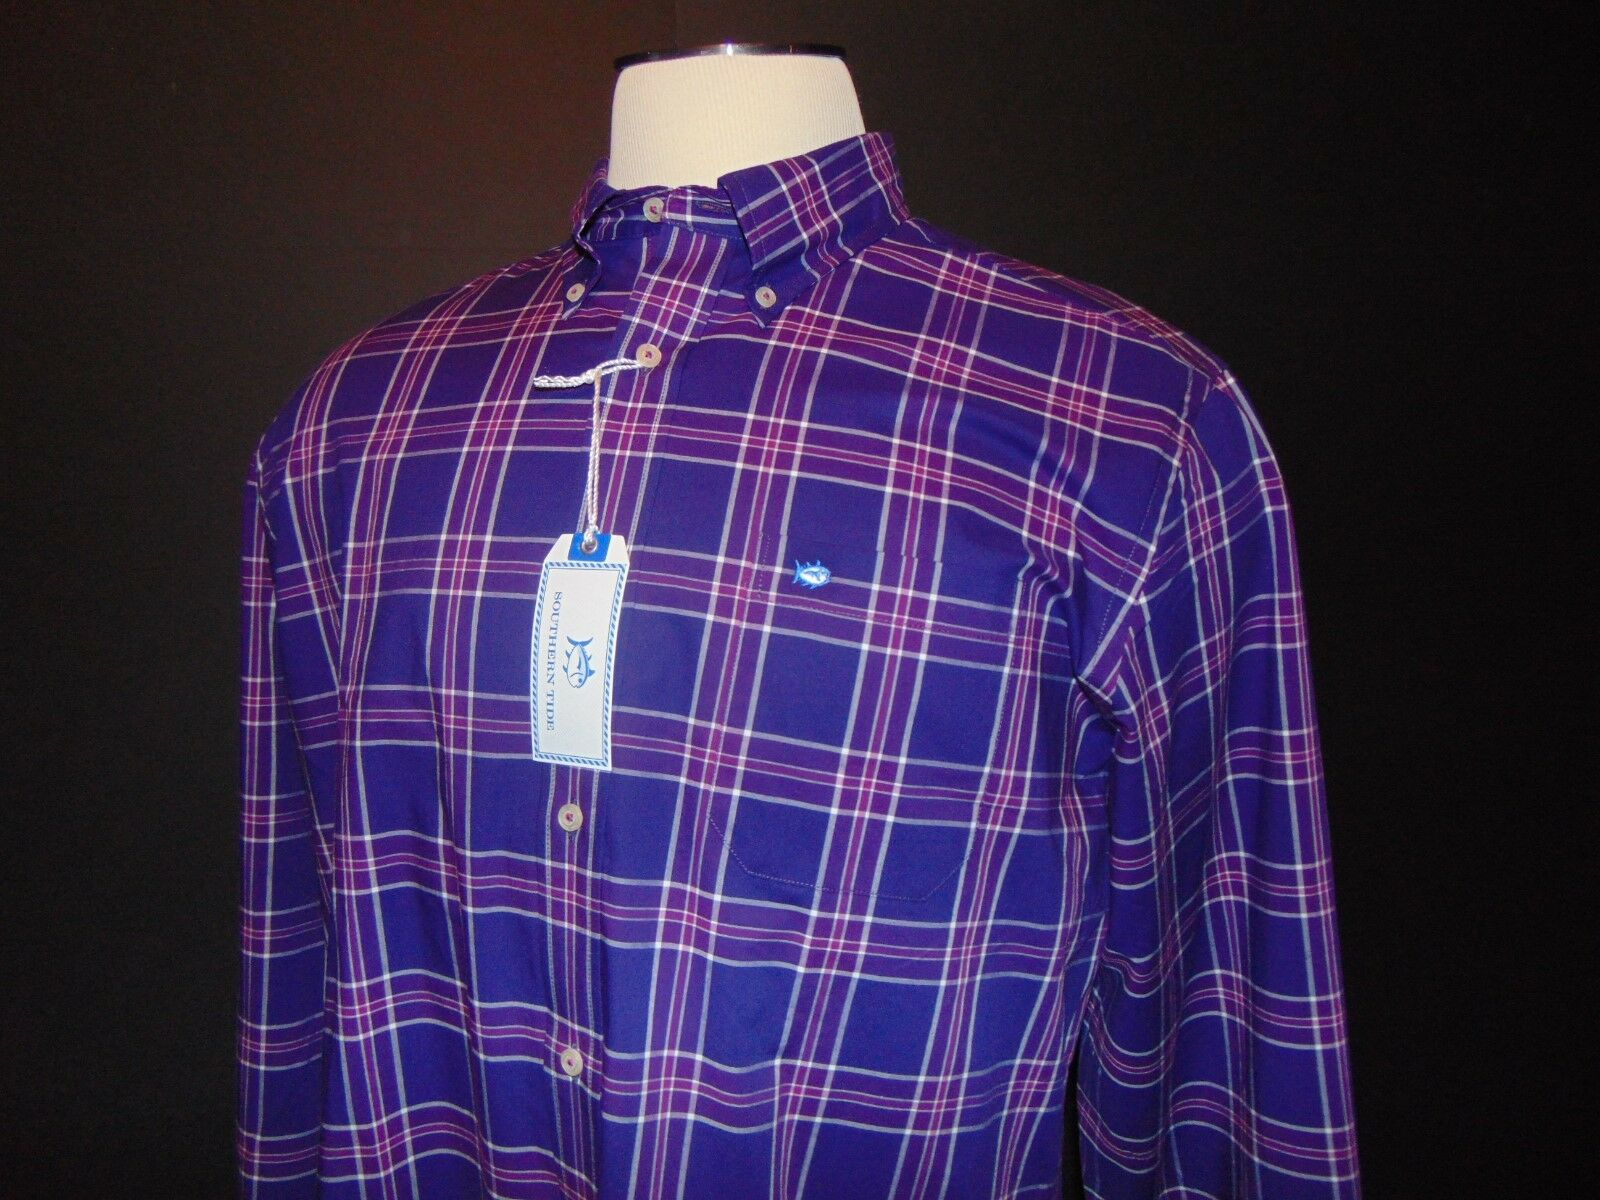 NWT, SOUTHERN TIDE Button Front Shirt  Small  Elderberry Plaid